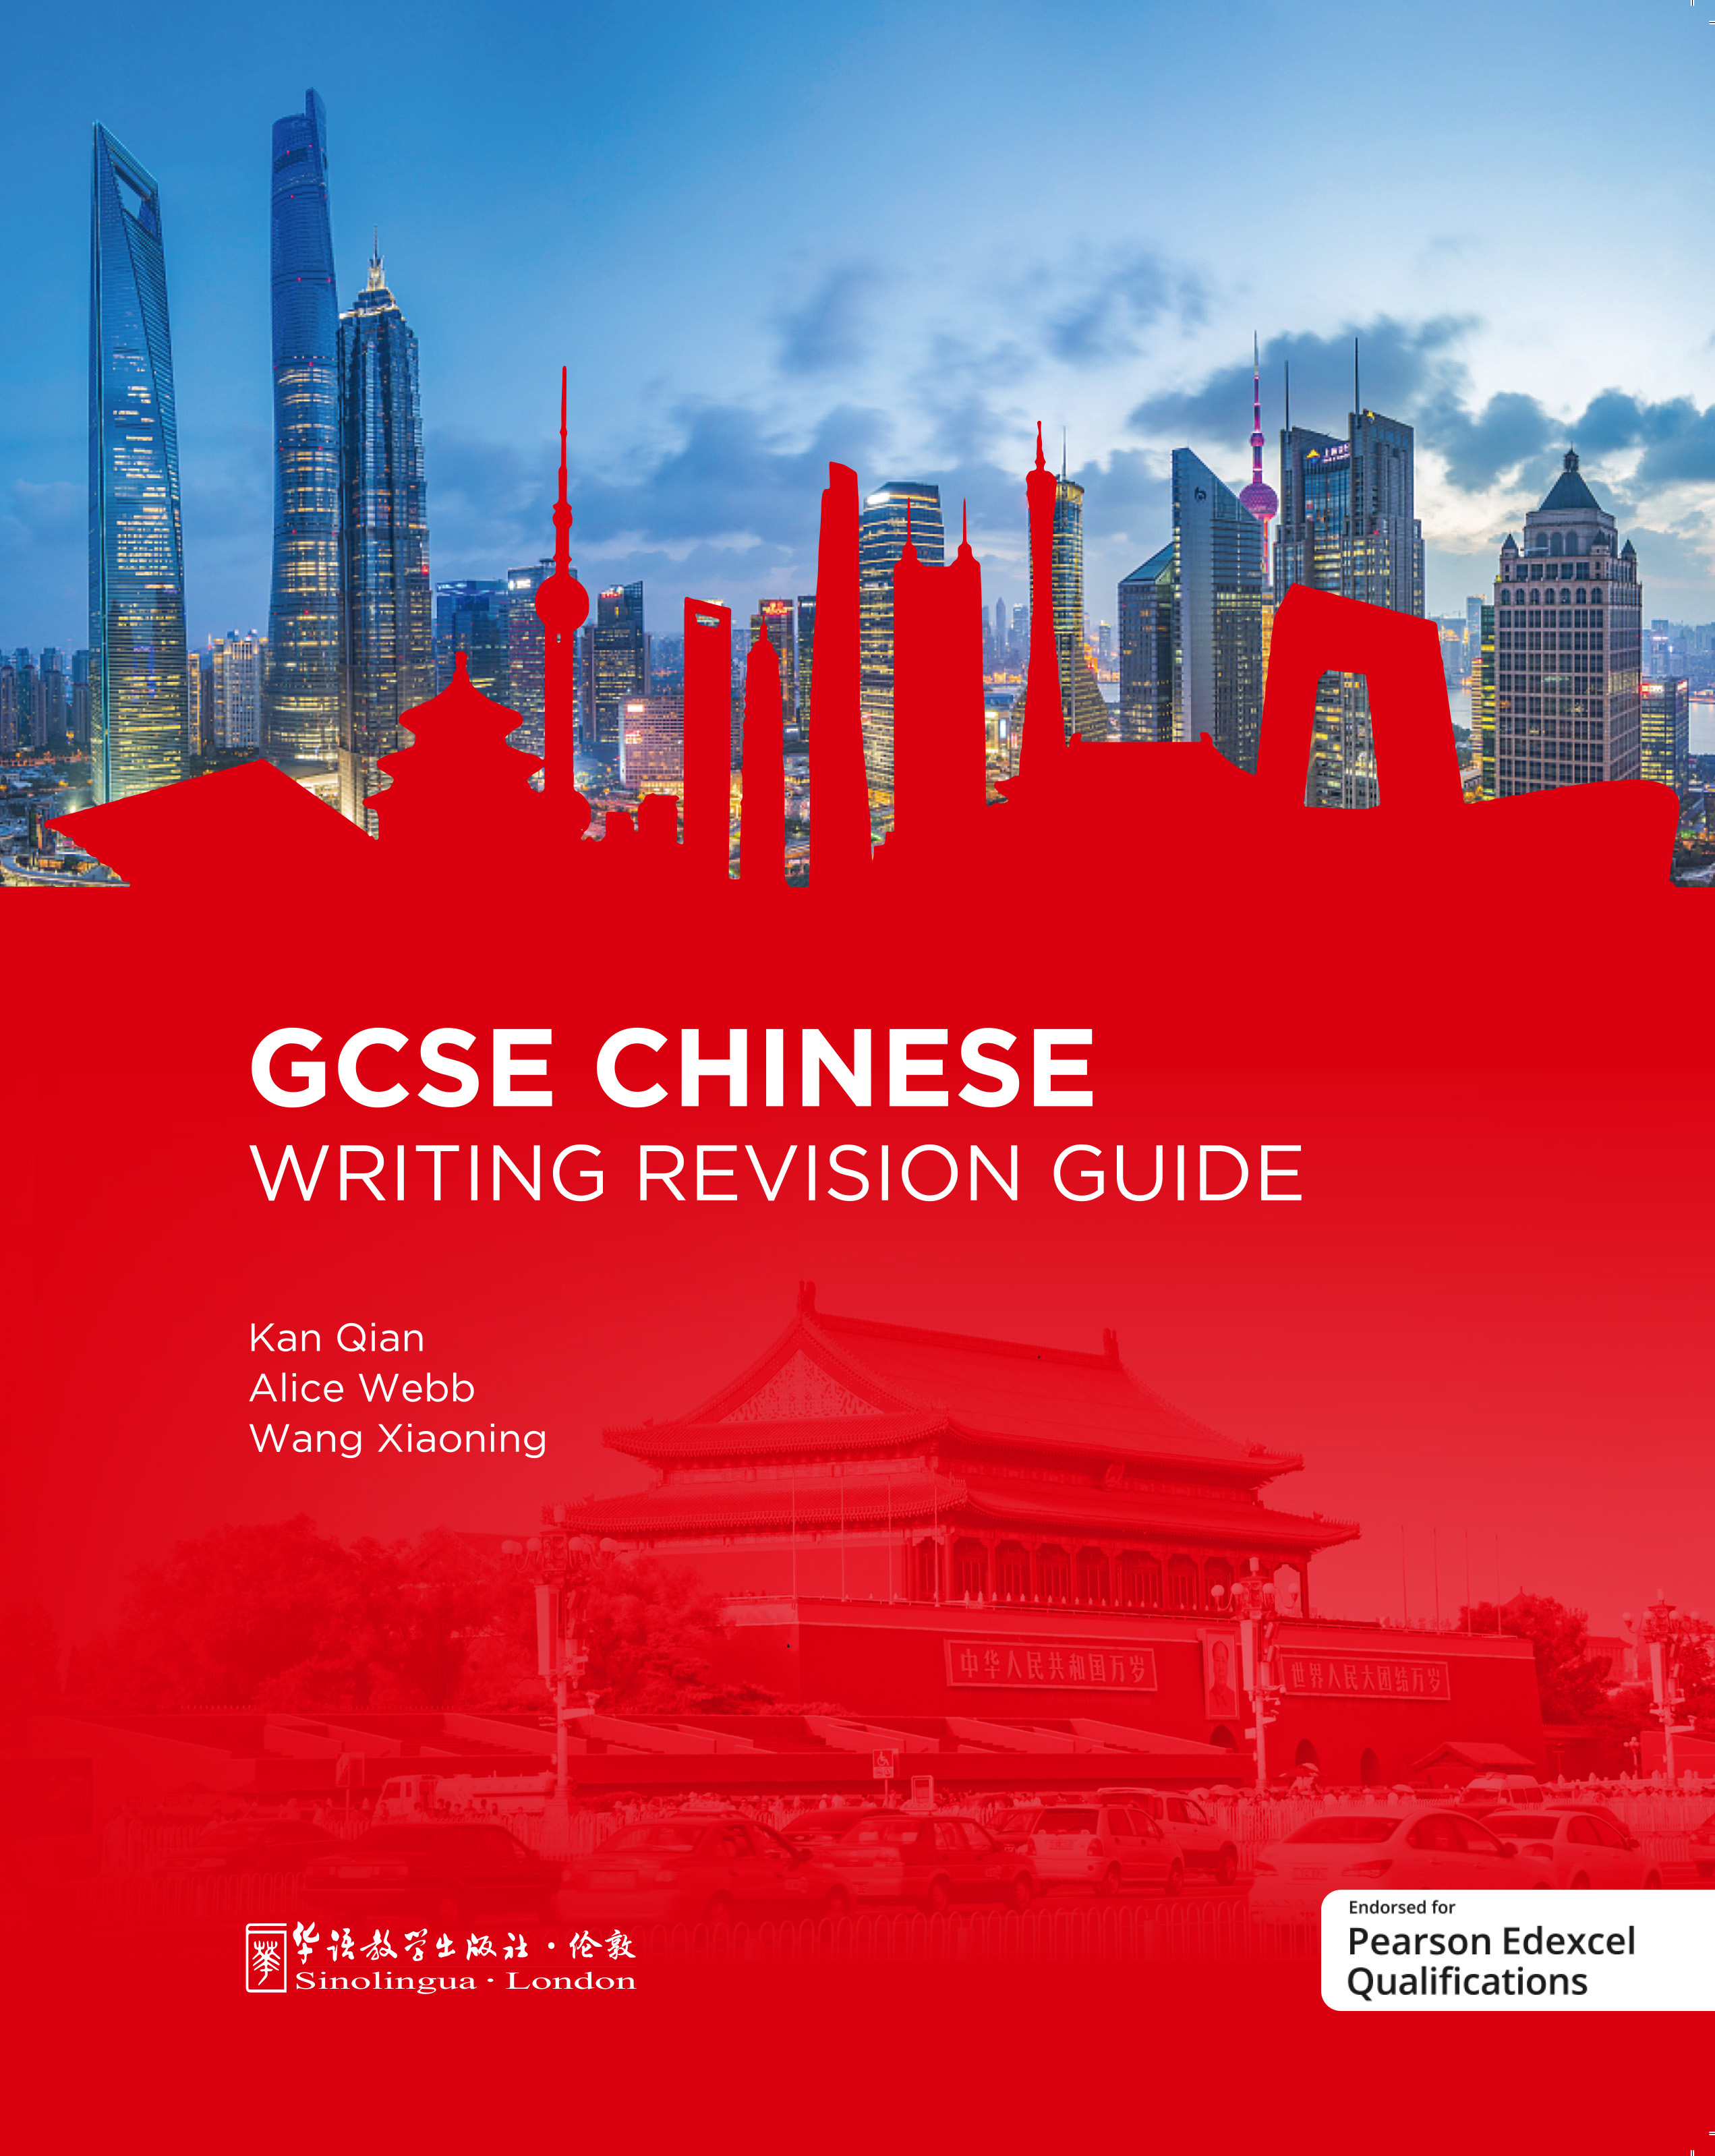 GCSE Chinese Writing Revision Guide